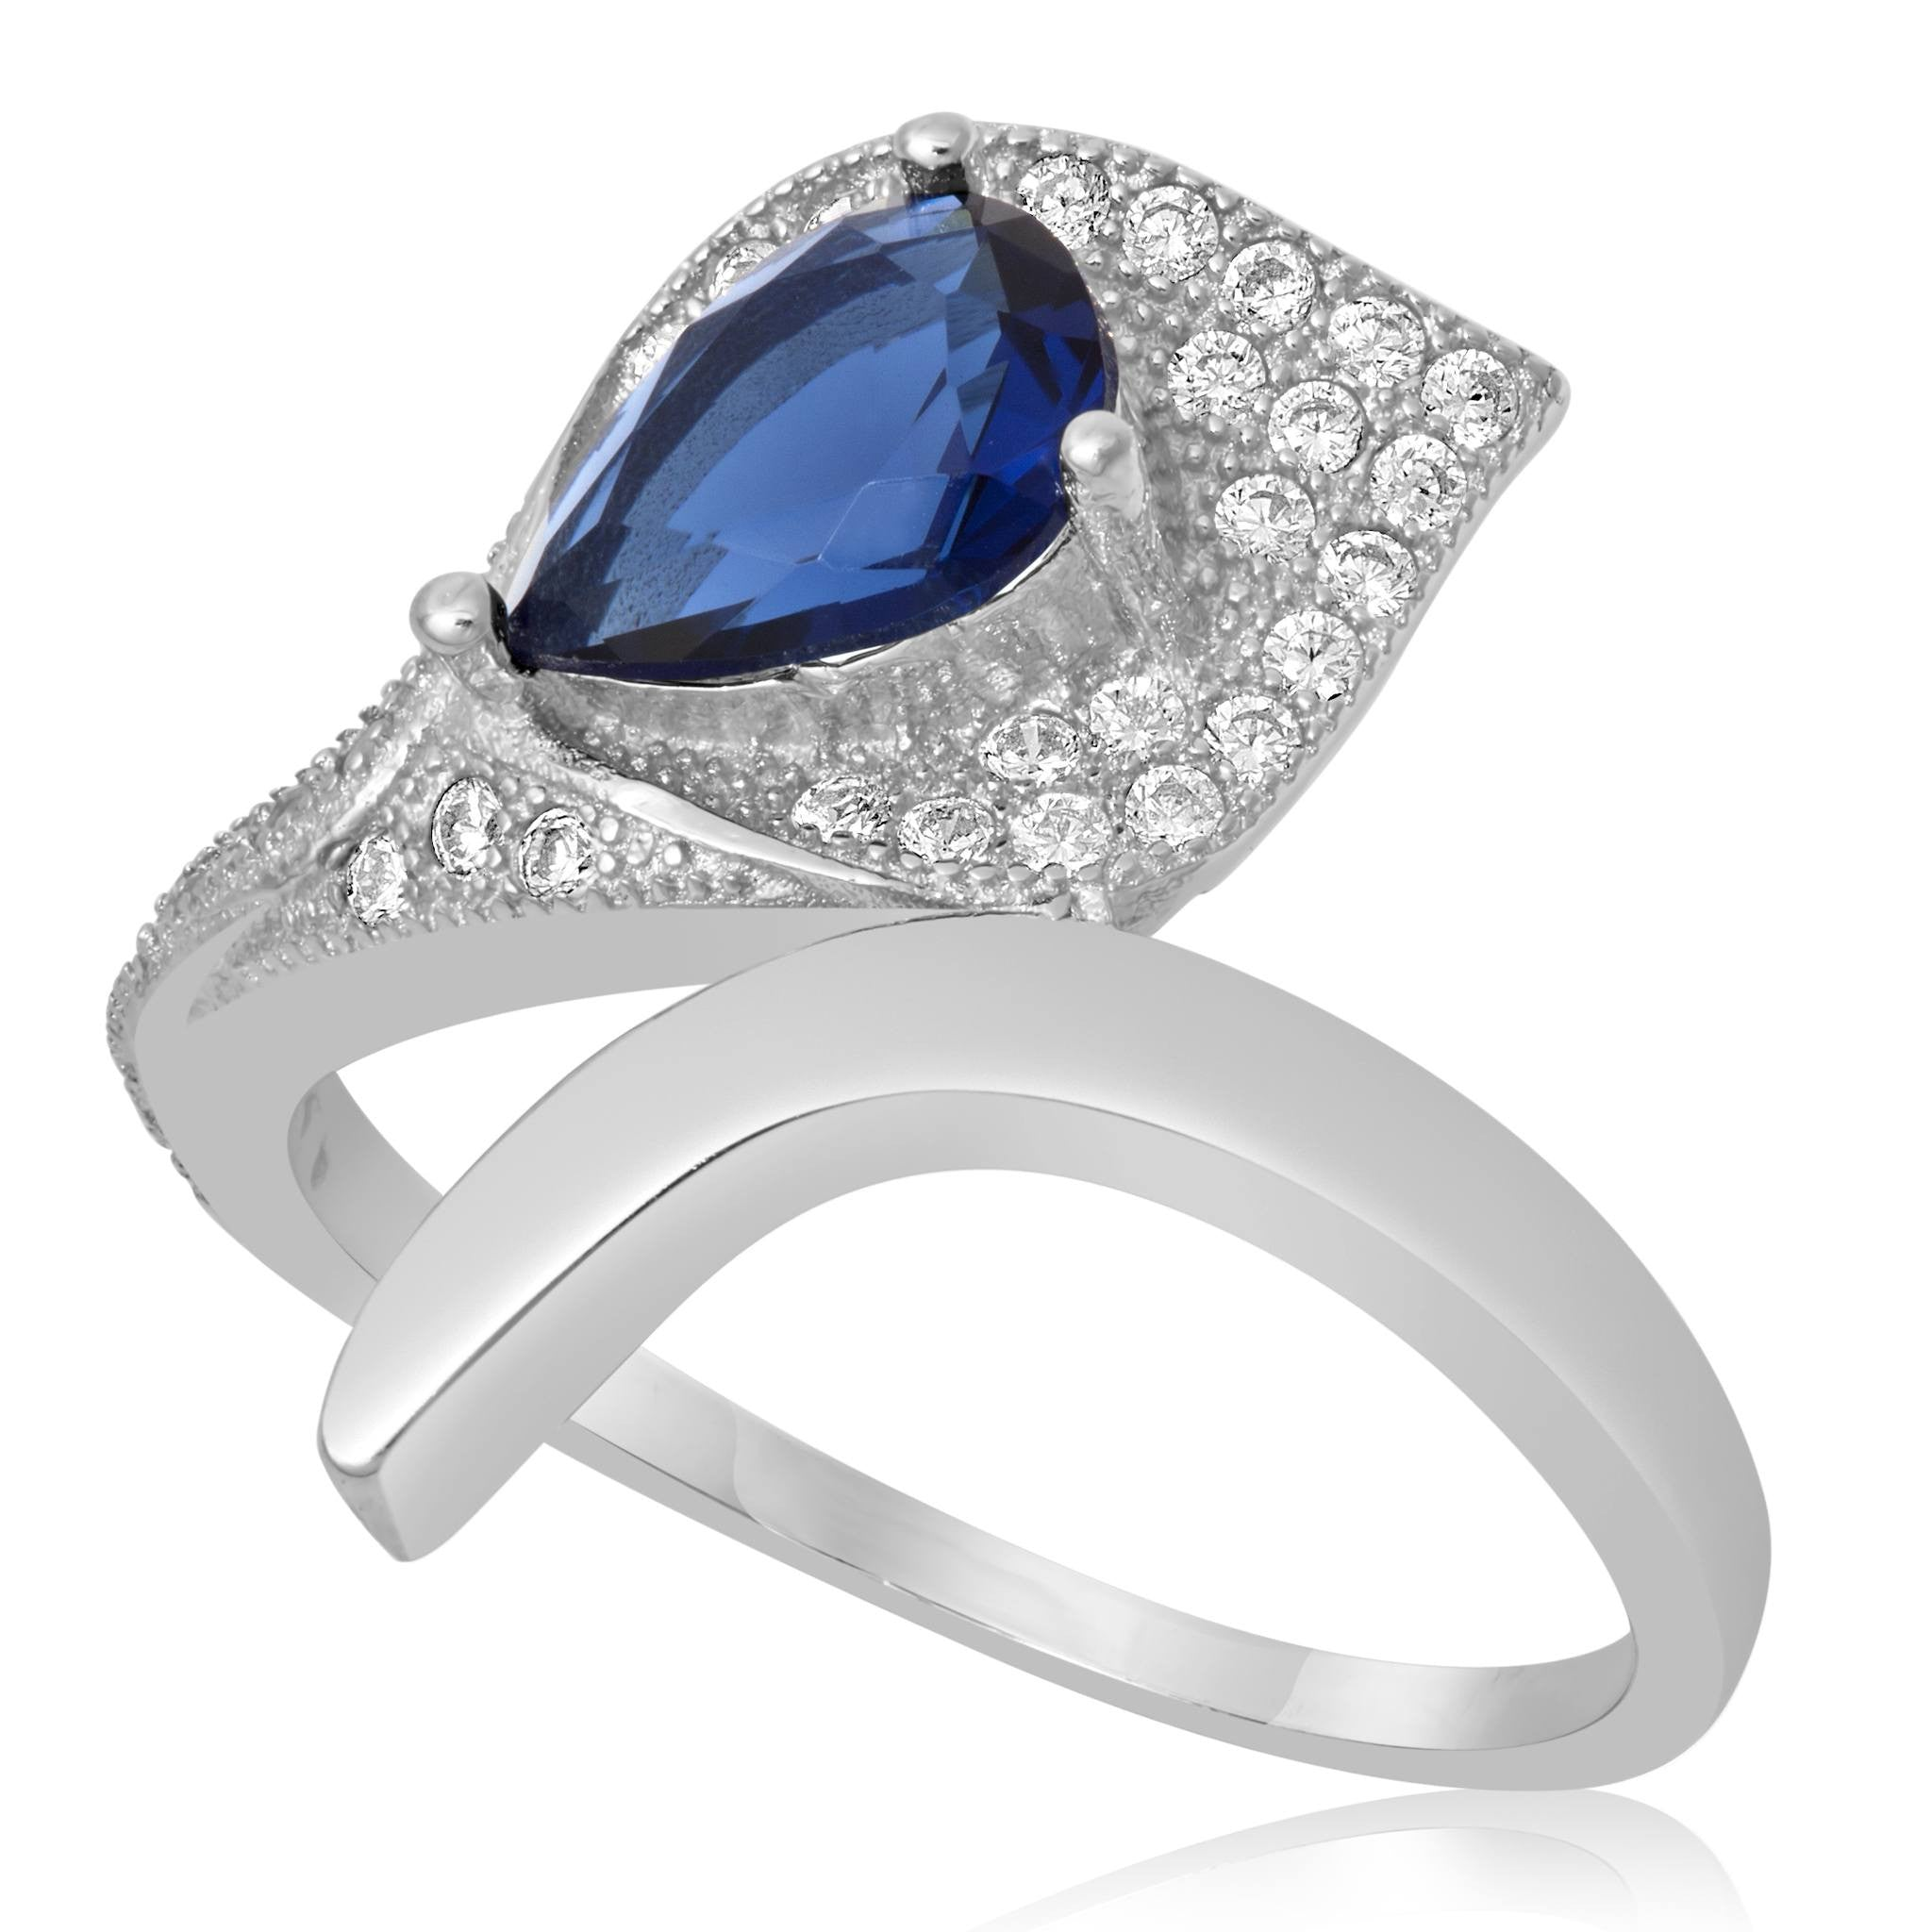 RZ-1652-BS Pear Shape Micropave Cubic Zirconia Ring - Blue Sapphire | Teeda